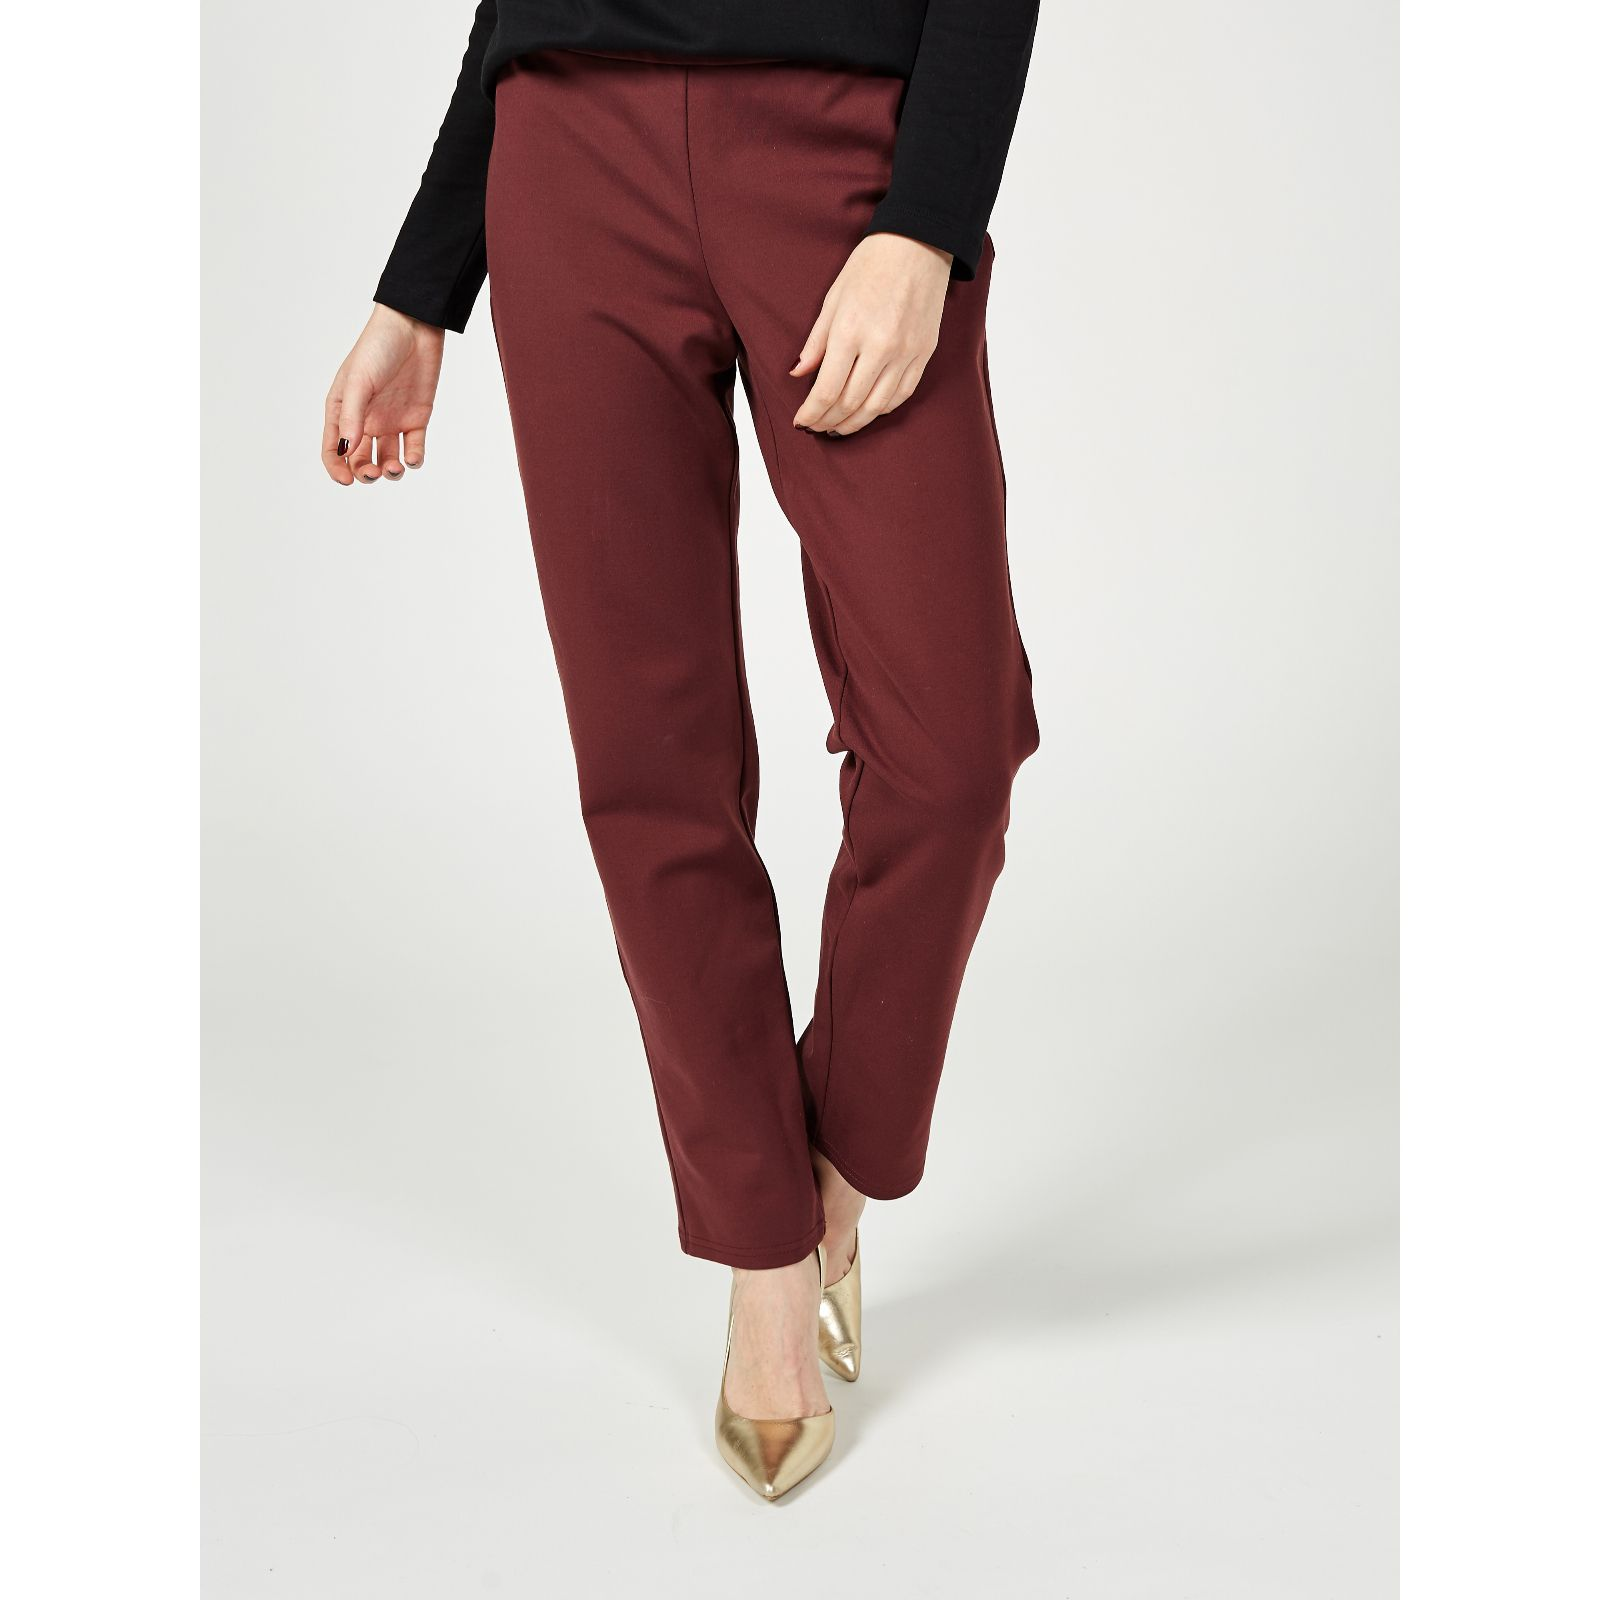 MarlaWynne FLATTERfit Premium Pant Camel Pull On Ankle Length Pants Size 10